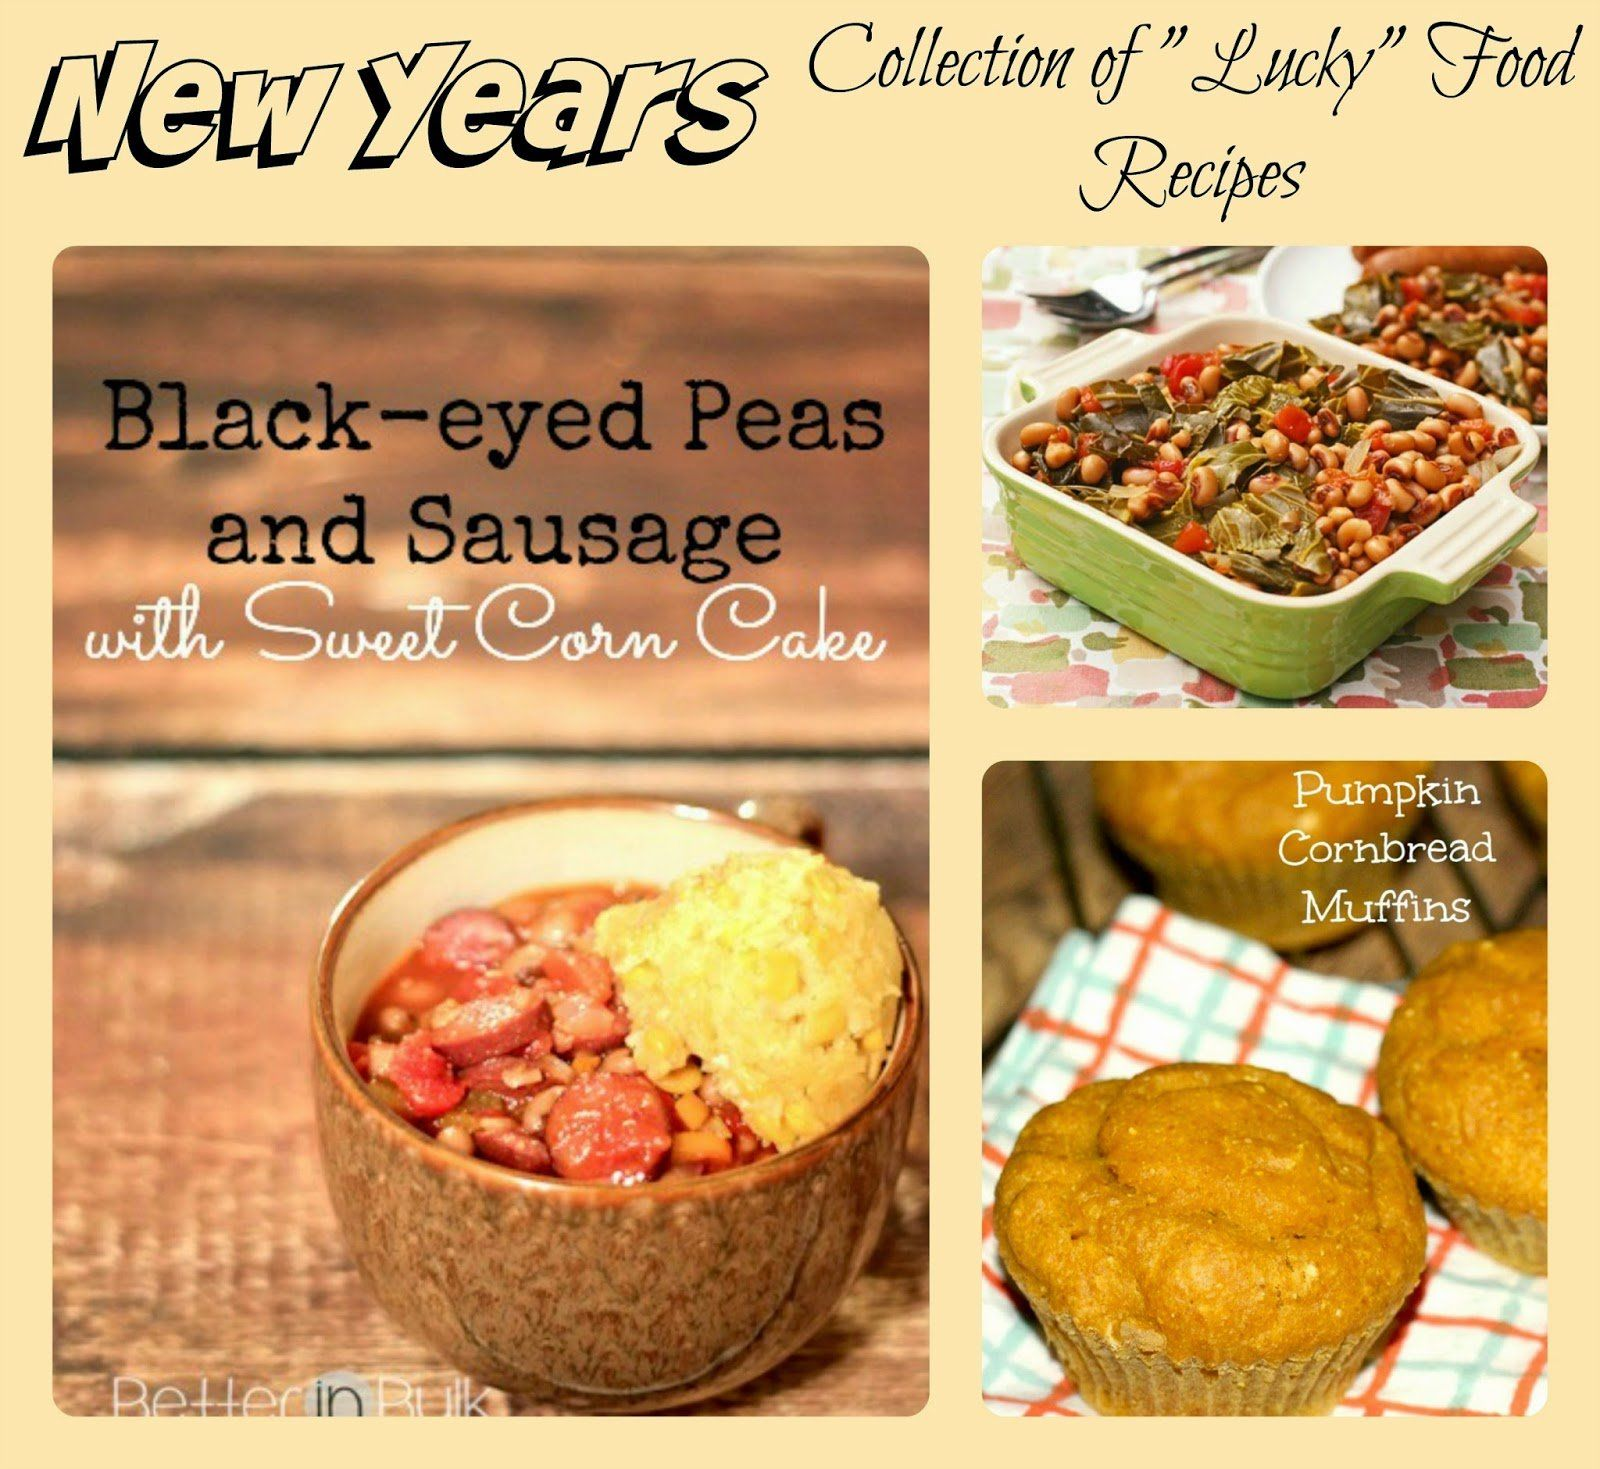 Lucky new year food recipes healthy new years day recipe new years there are various new years day traditions all around the world many of these traditions center around food with certain foods bringing good luck forumfinder Image collections